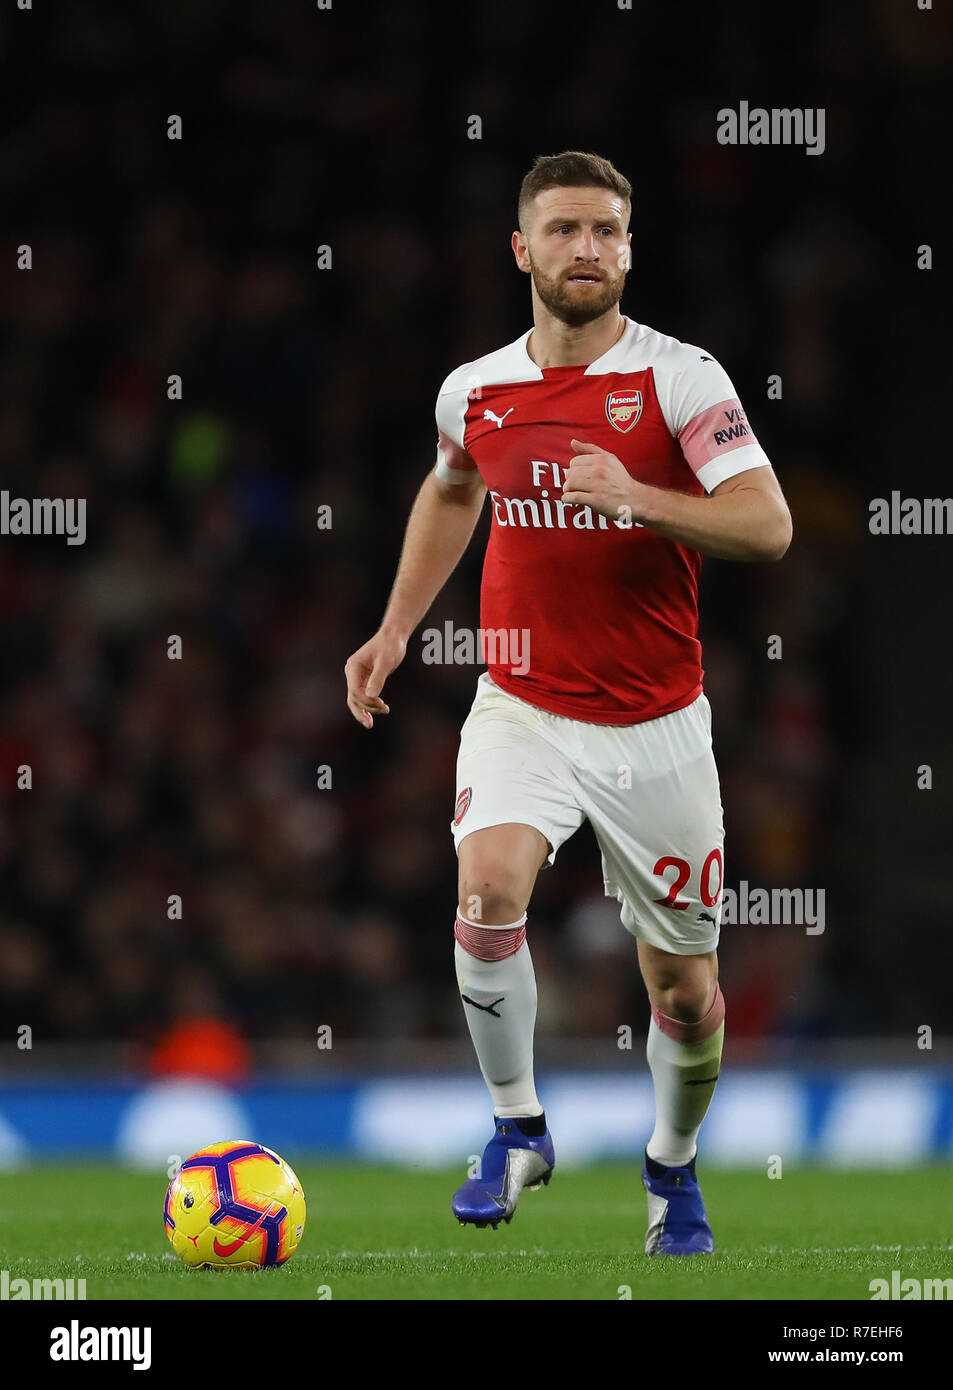 London, UK. 8th Dec 2018. Shkodran Mustafi of Arsenal - Arsenal v Huddersfield Town, Premier League, Emirates Stadium, London (Holloway) - 8th December 2018  Editorial Use Only - DataCo restrictions apply Credit: MatchDay Images Limited/Alamy Live NewsEditorial use only, license required for commercial use. No use in betting, Credit: MatchDay Images Limited/Alamy Live News - Stock Image